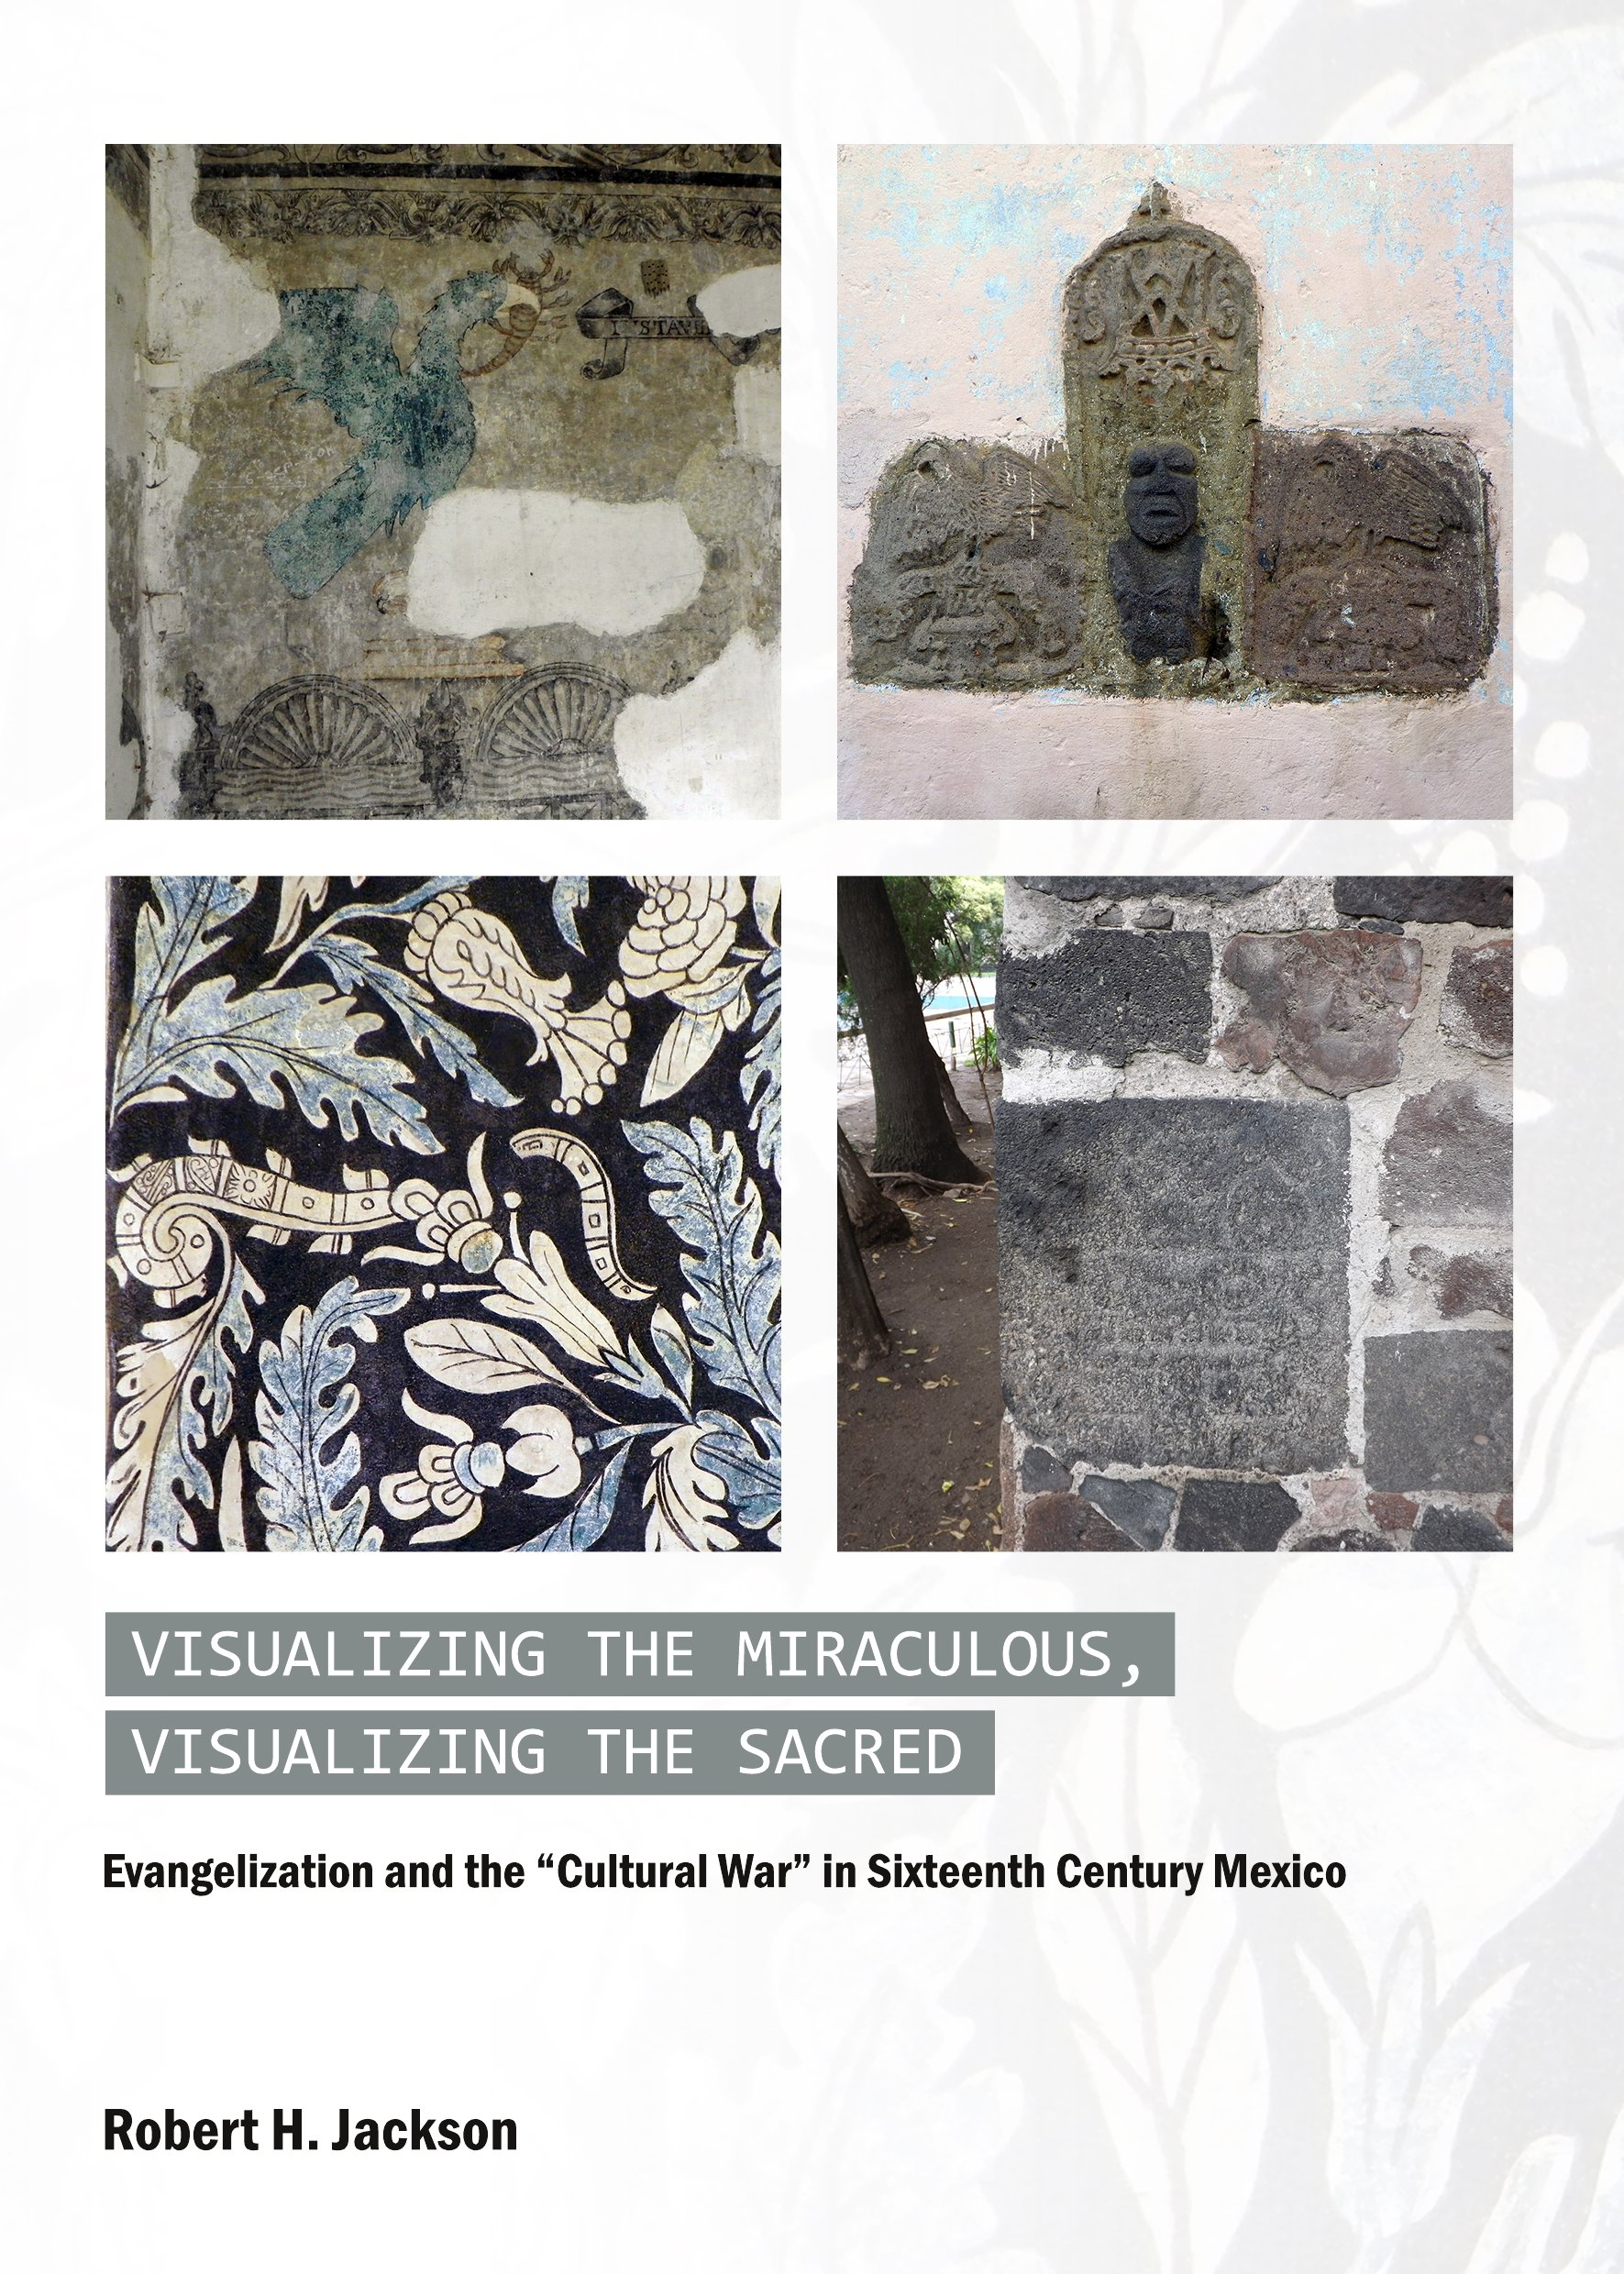 """Visualizing the Miraculous, Visualizing the Sacred: Evangelization and the """"Cultural War"""" in Sixteenth Century Mexico"""